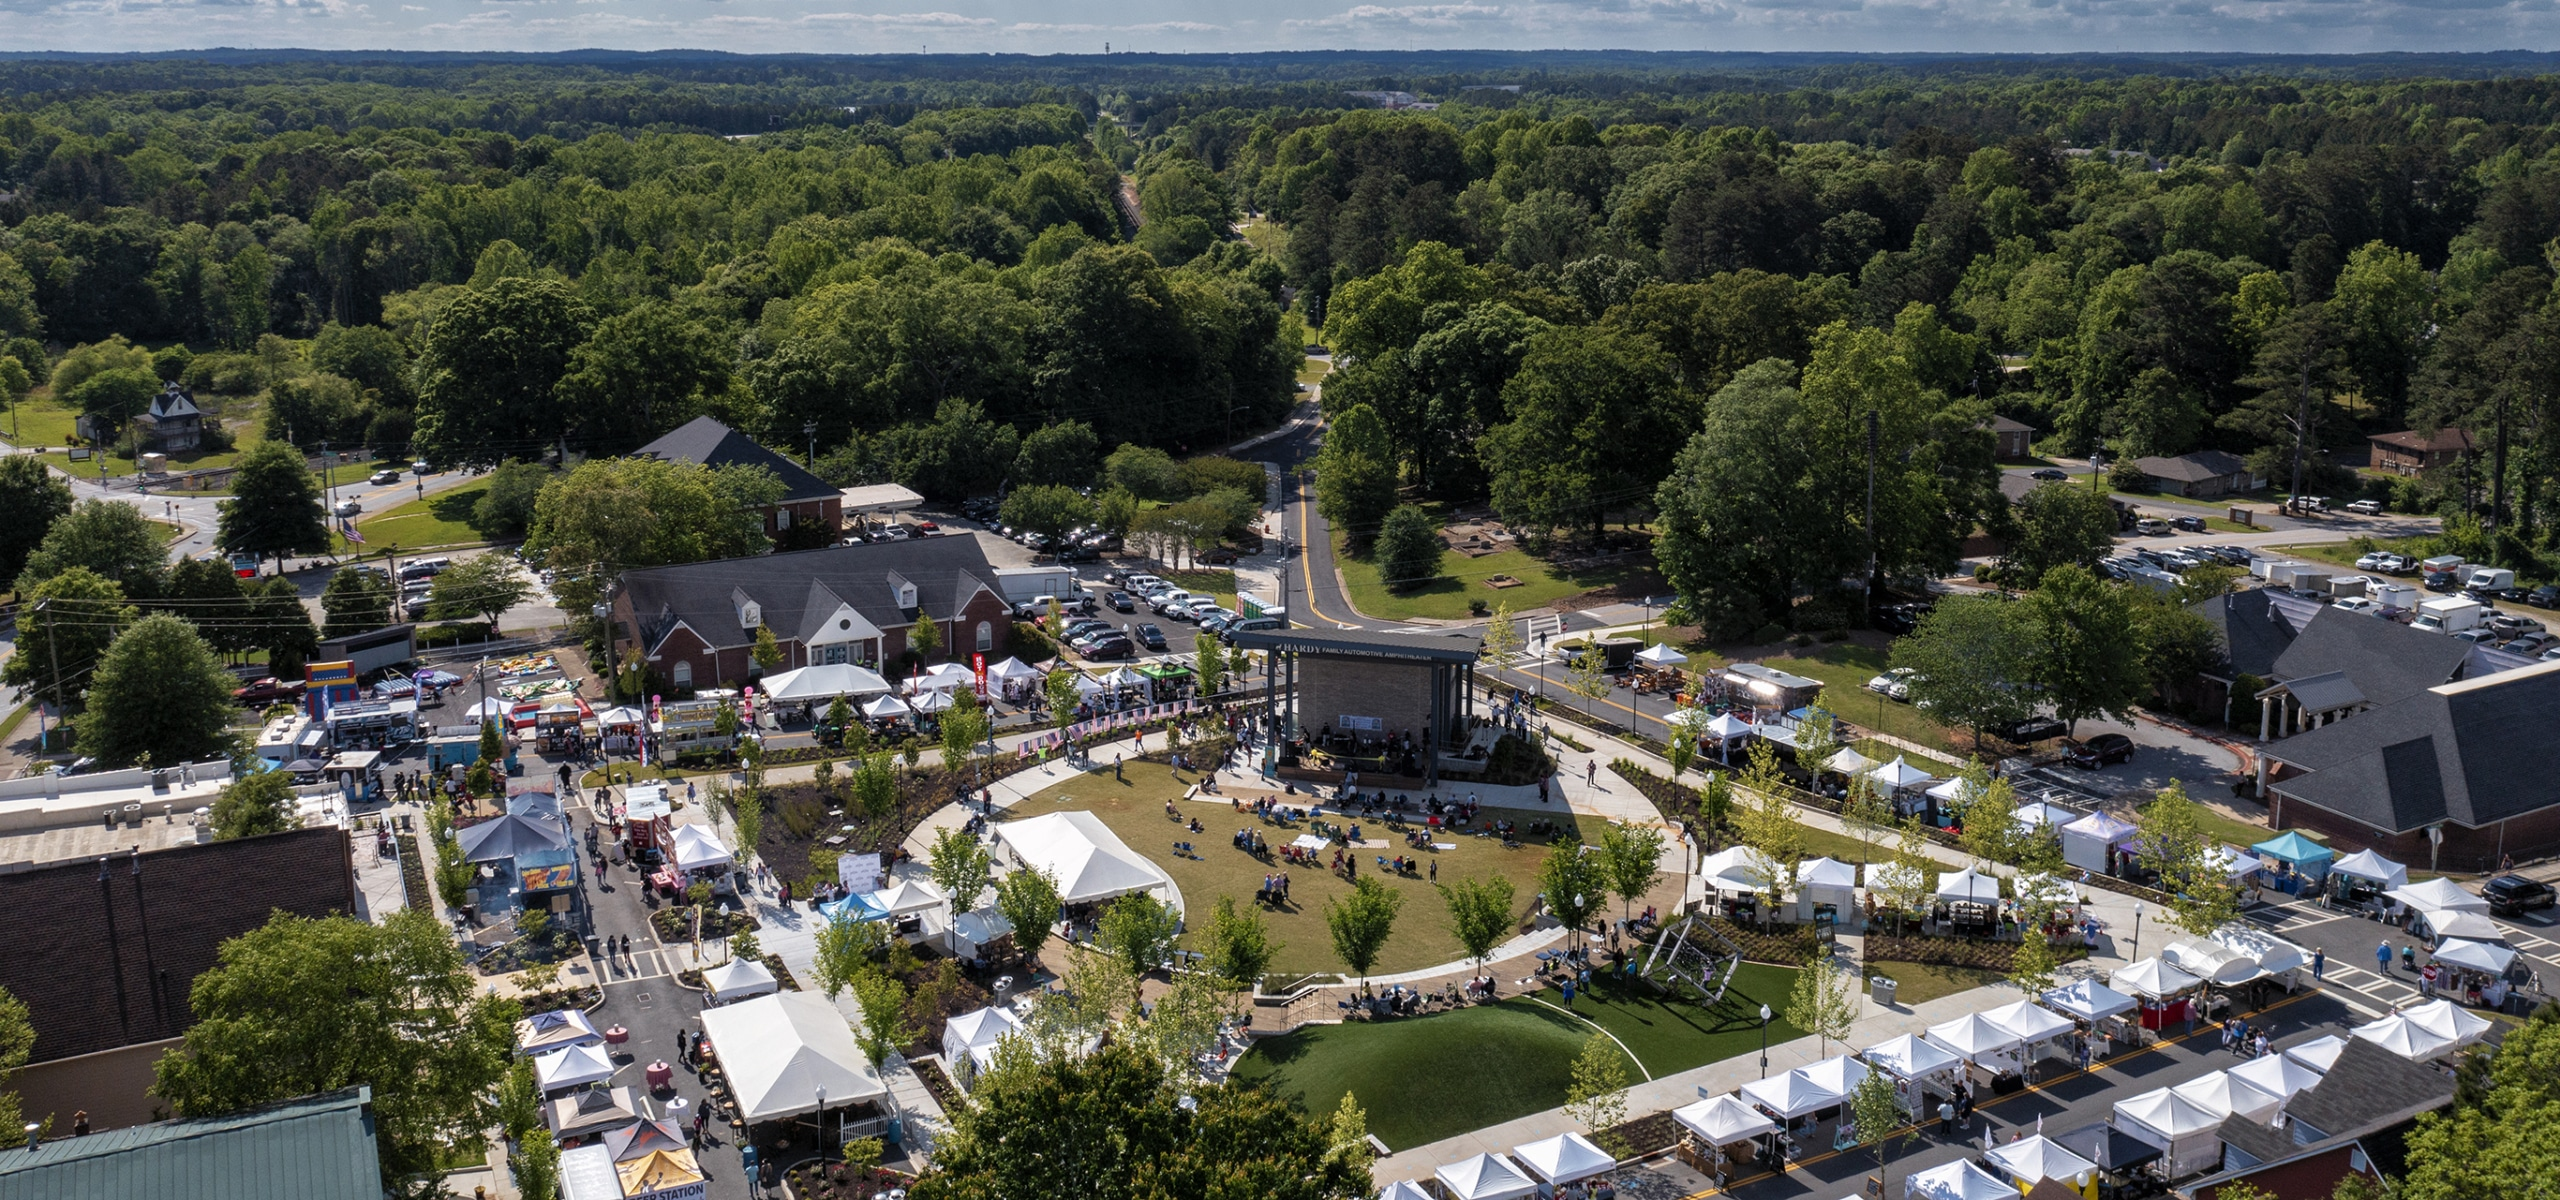 Powder Springs Town Green Grand Opening Aerial Photo